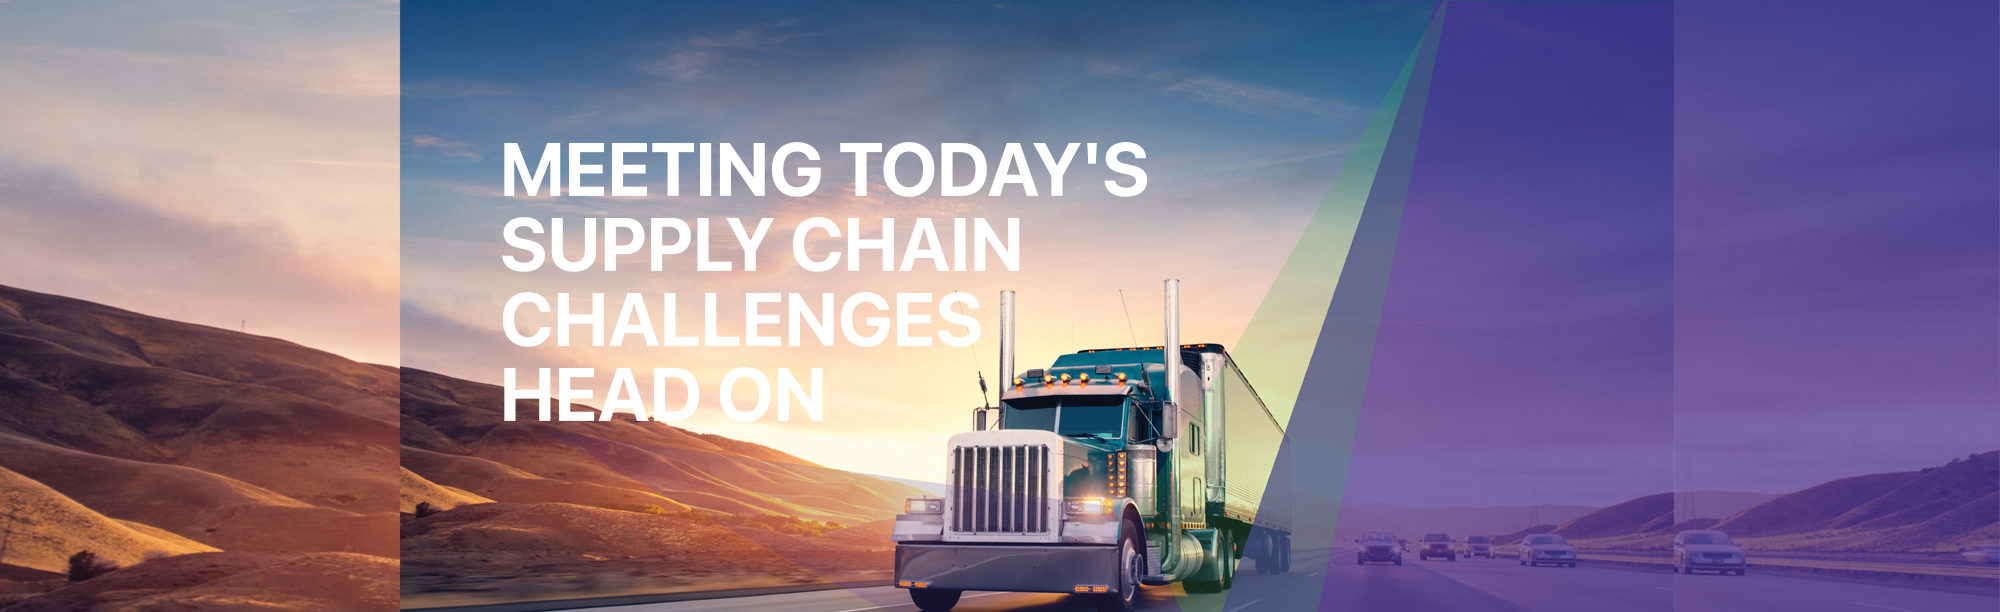 Meeting today's supply chain challenges head on